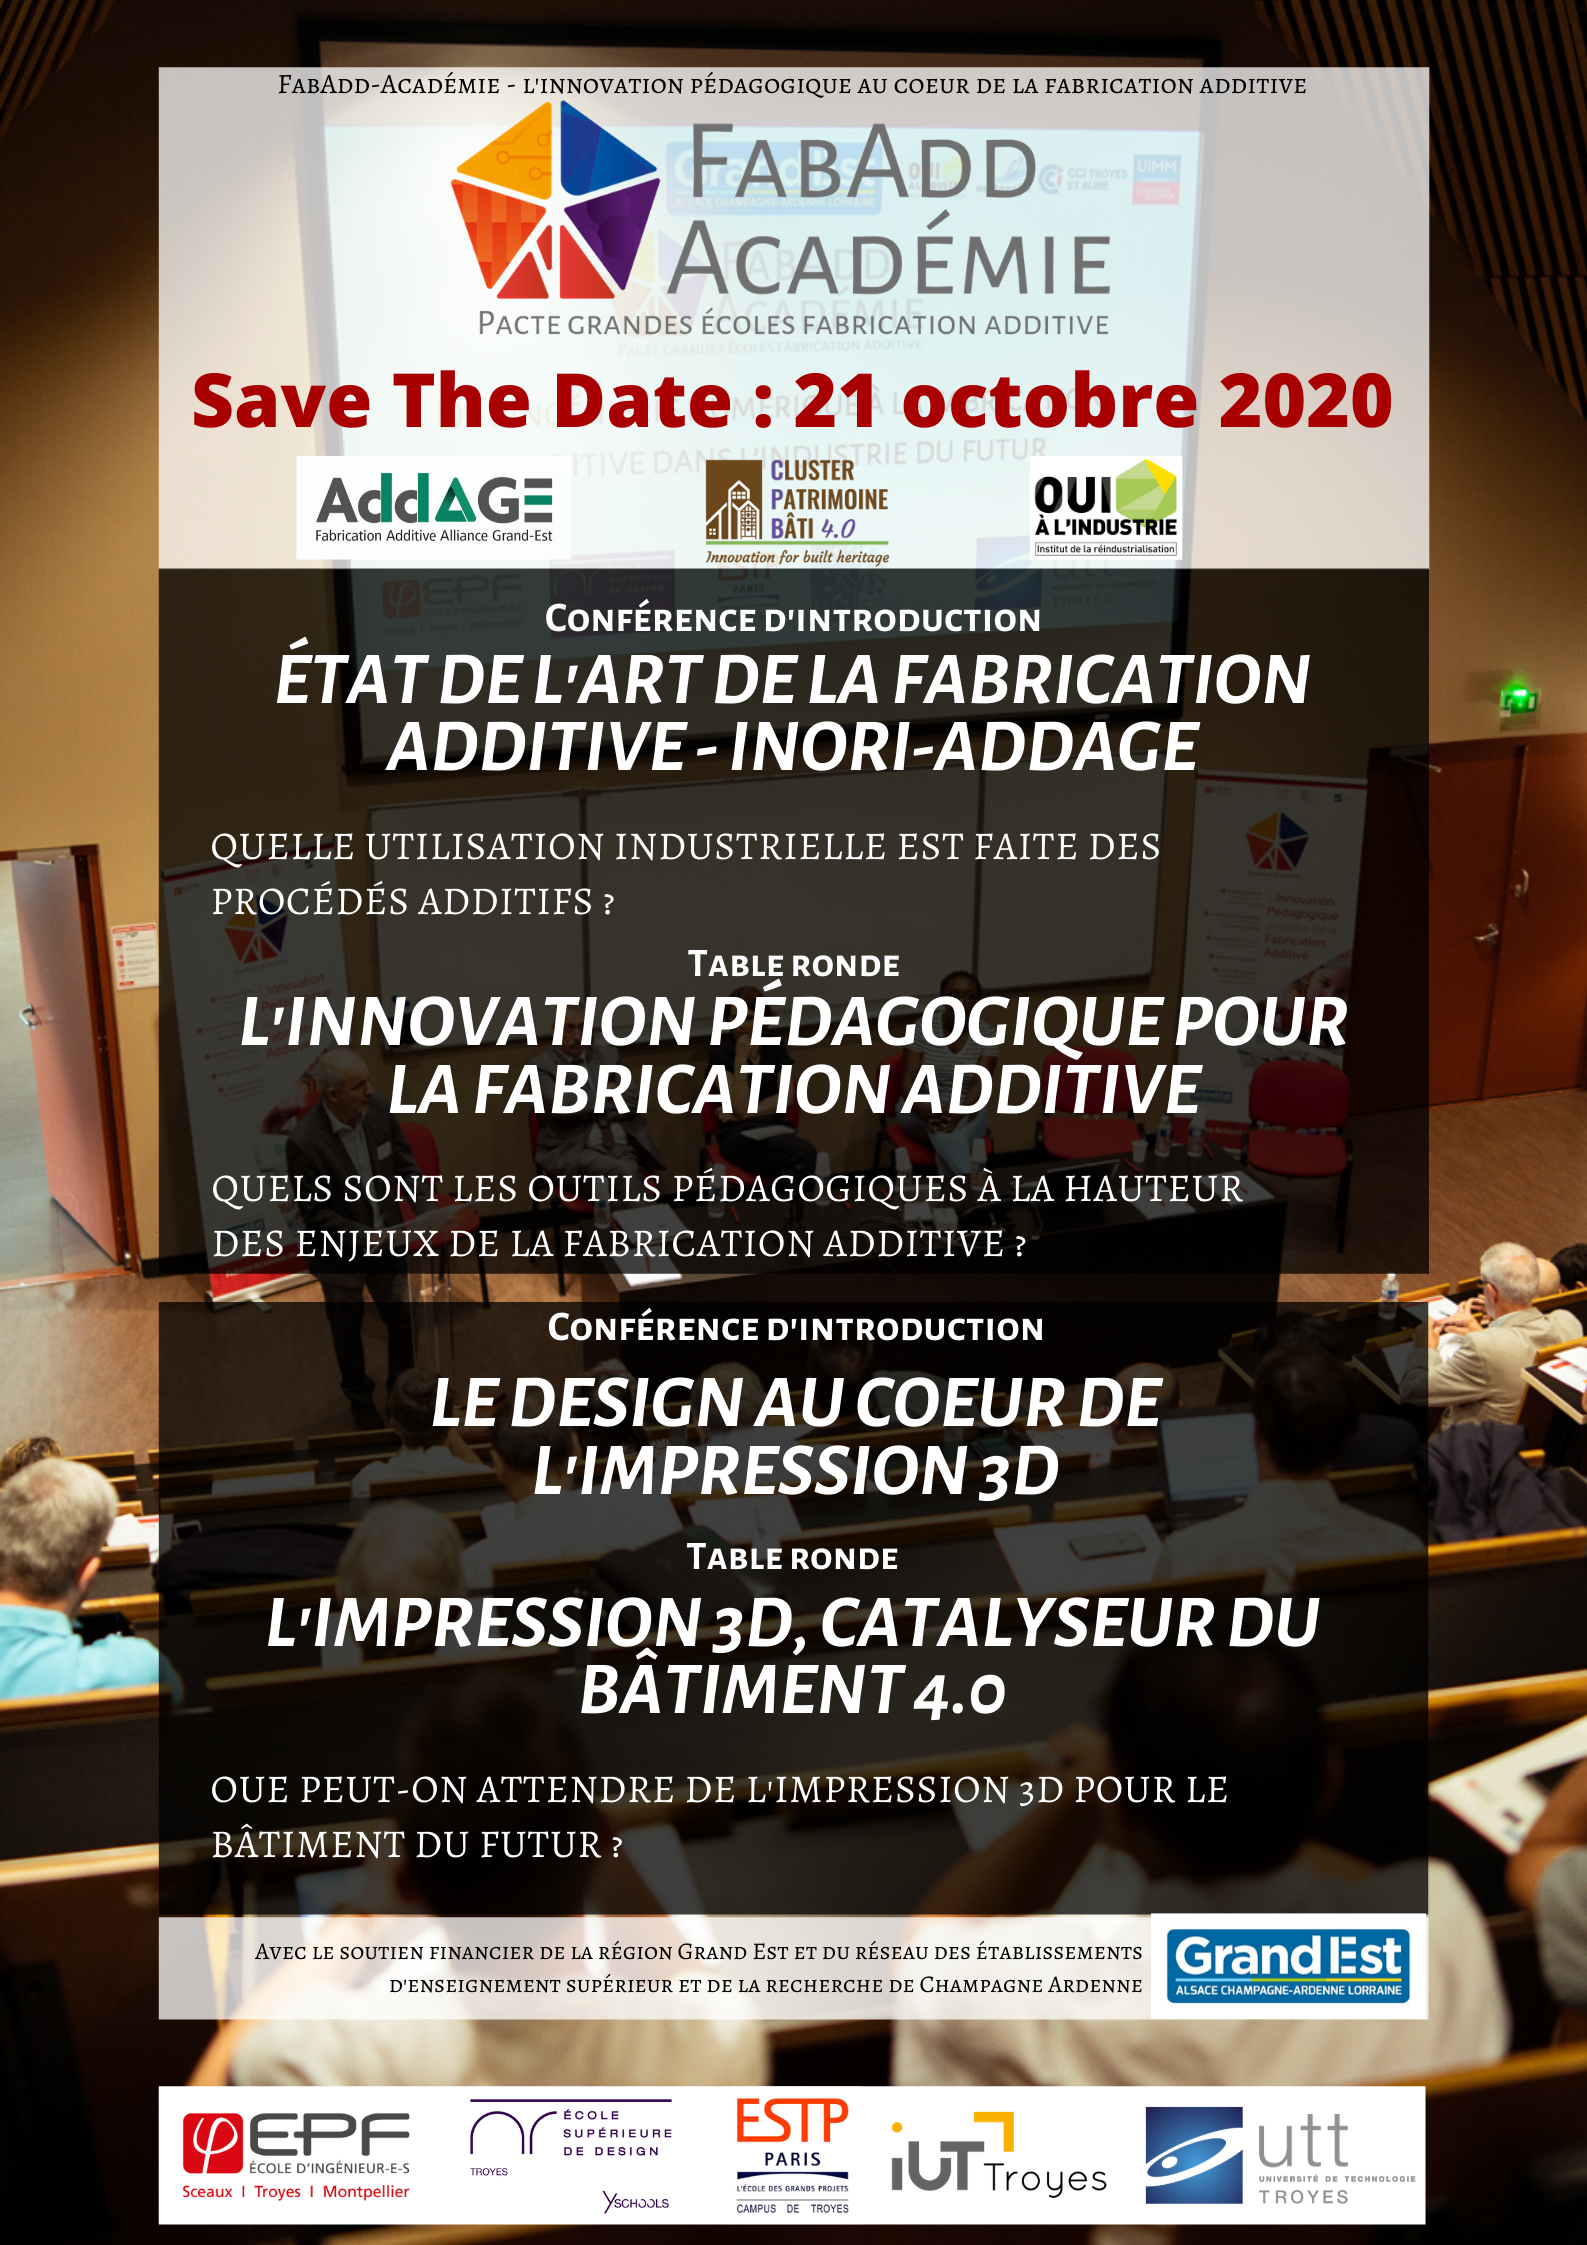 affiche Save the date 21 octobre